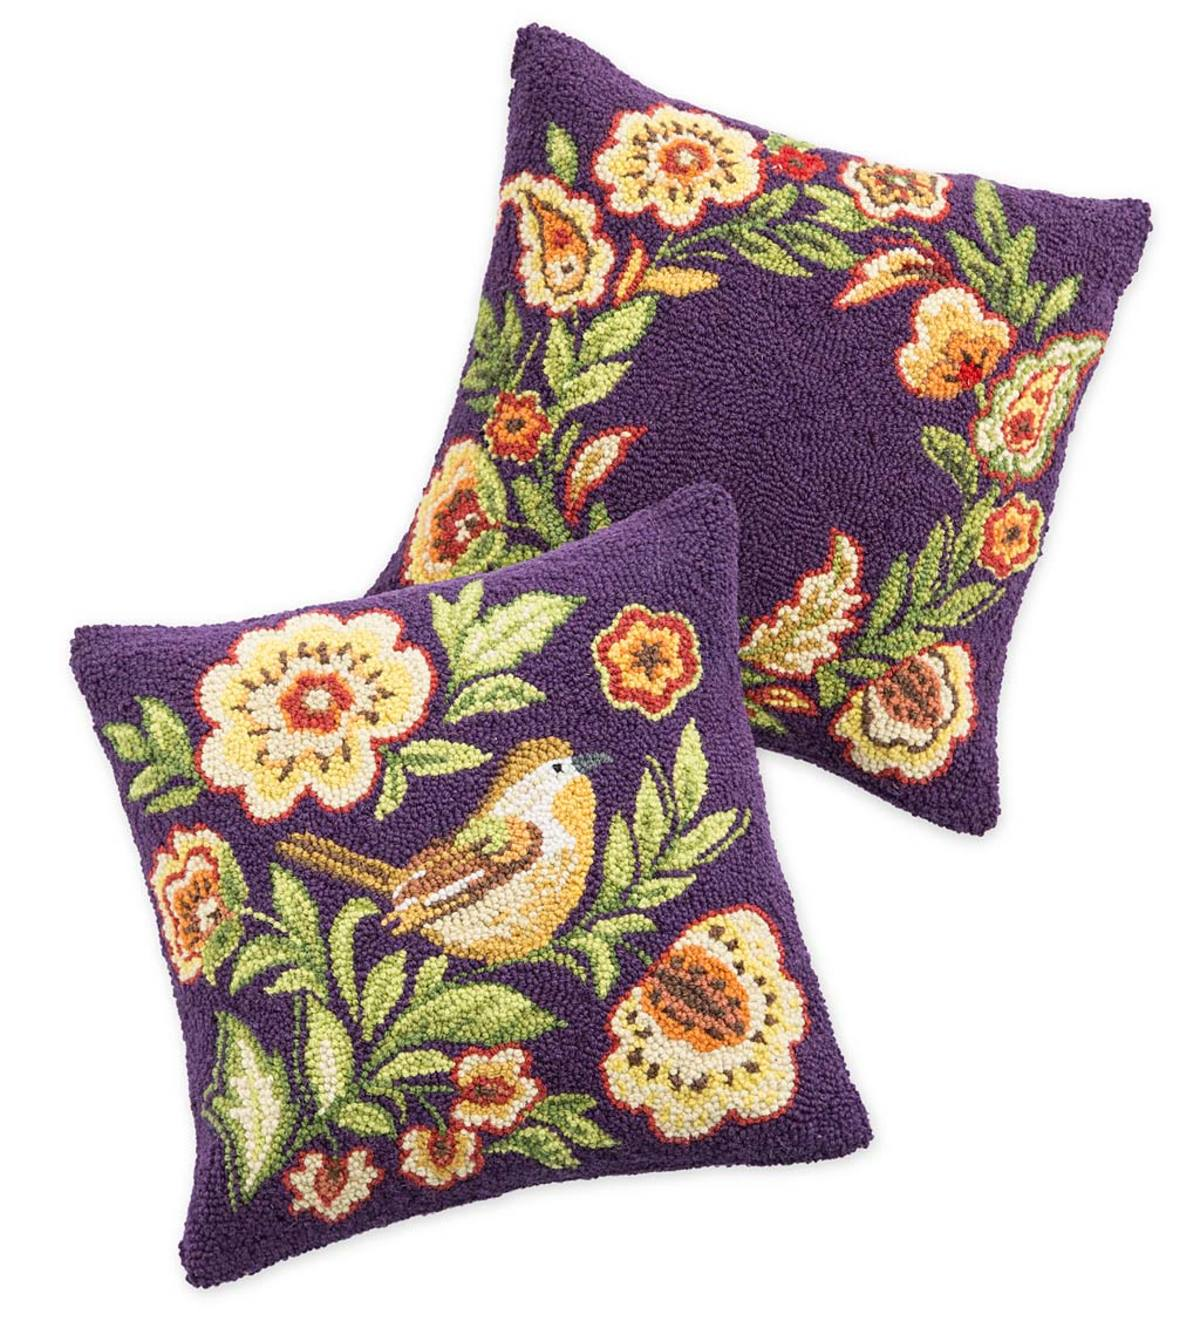 Hand-Hooked Wool Delilah Throw Pillows